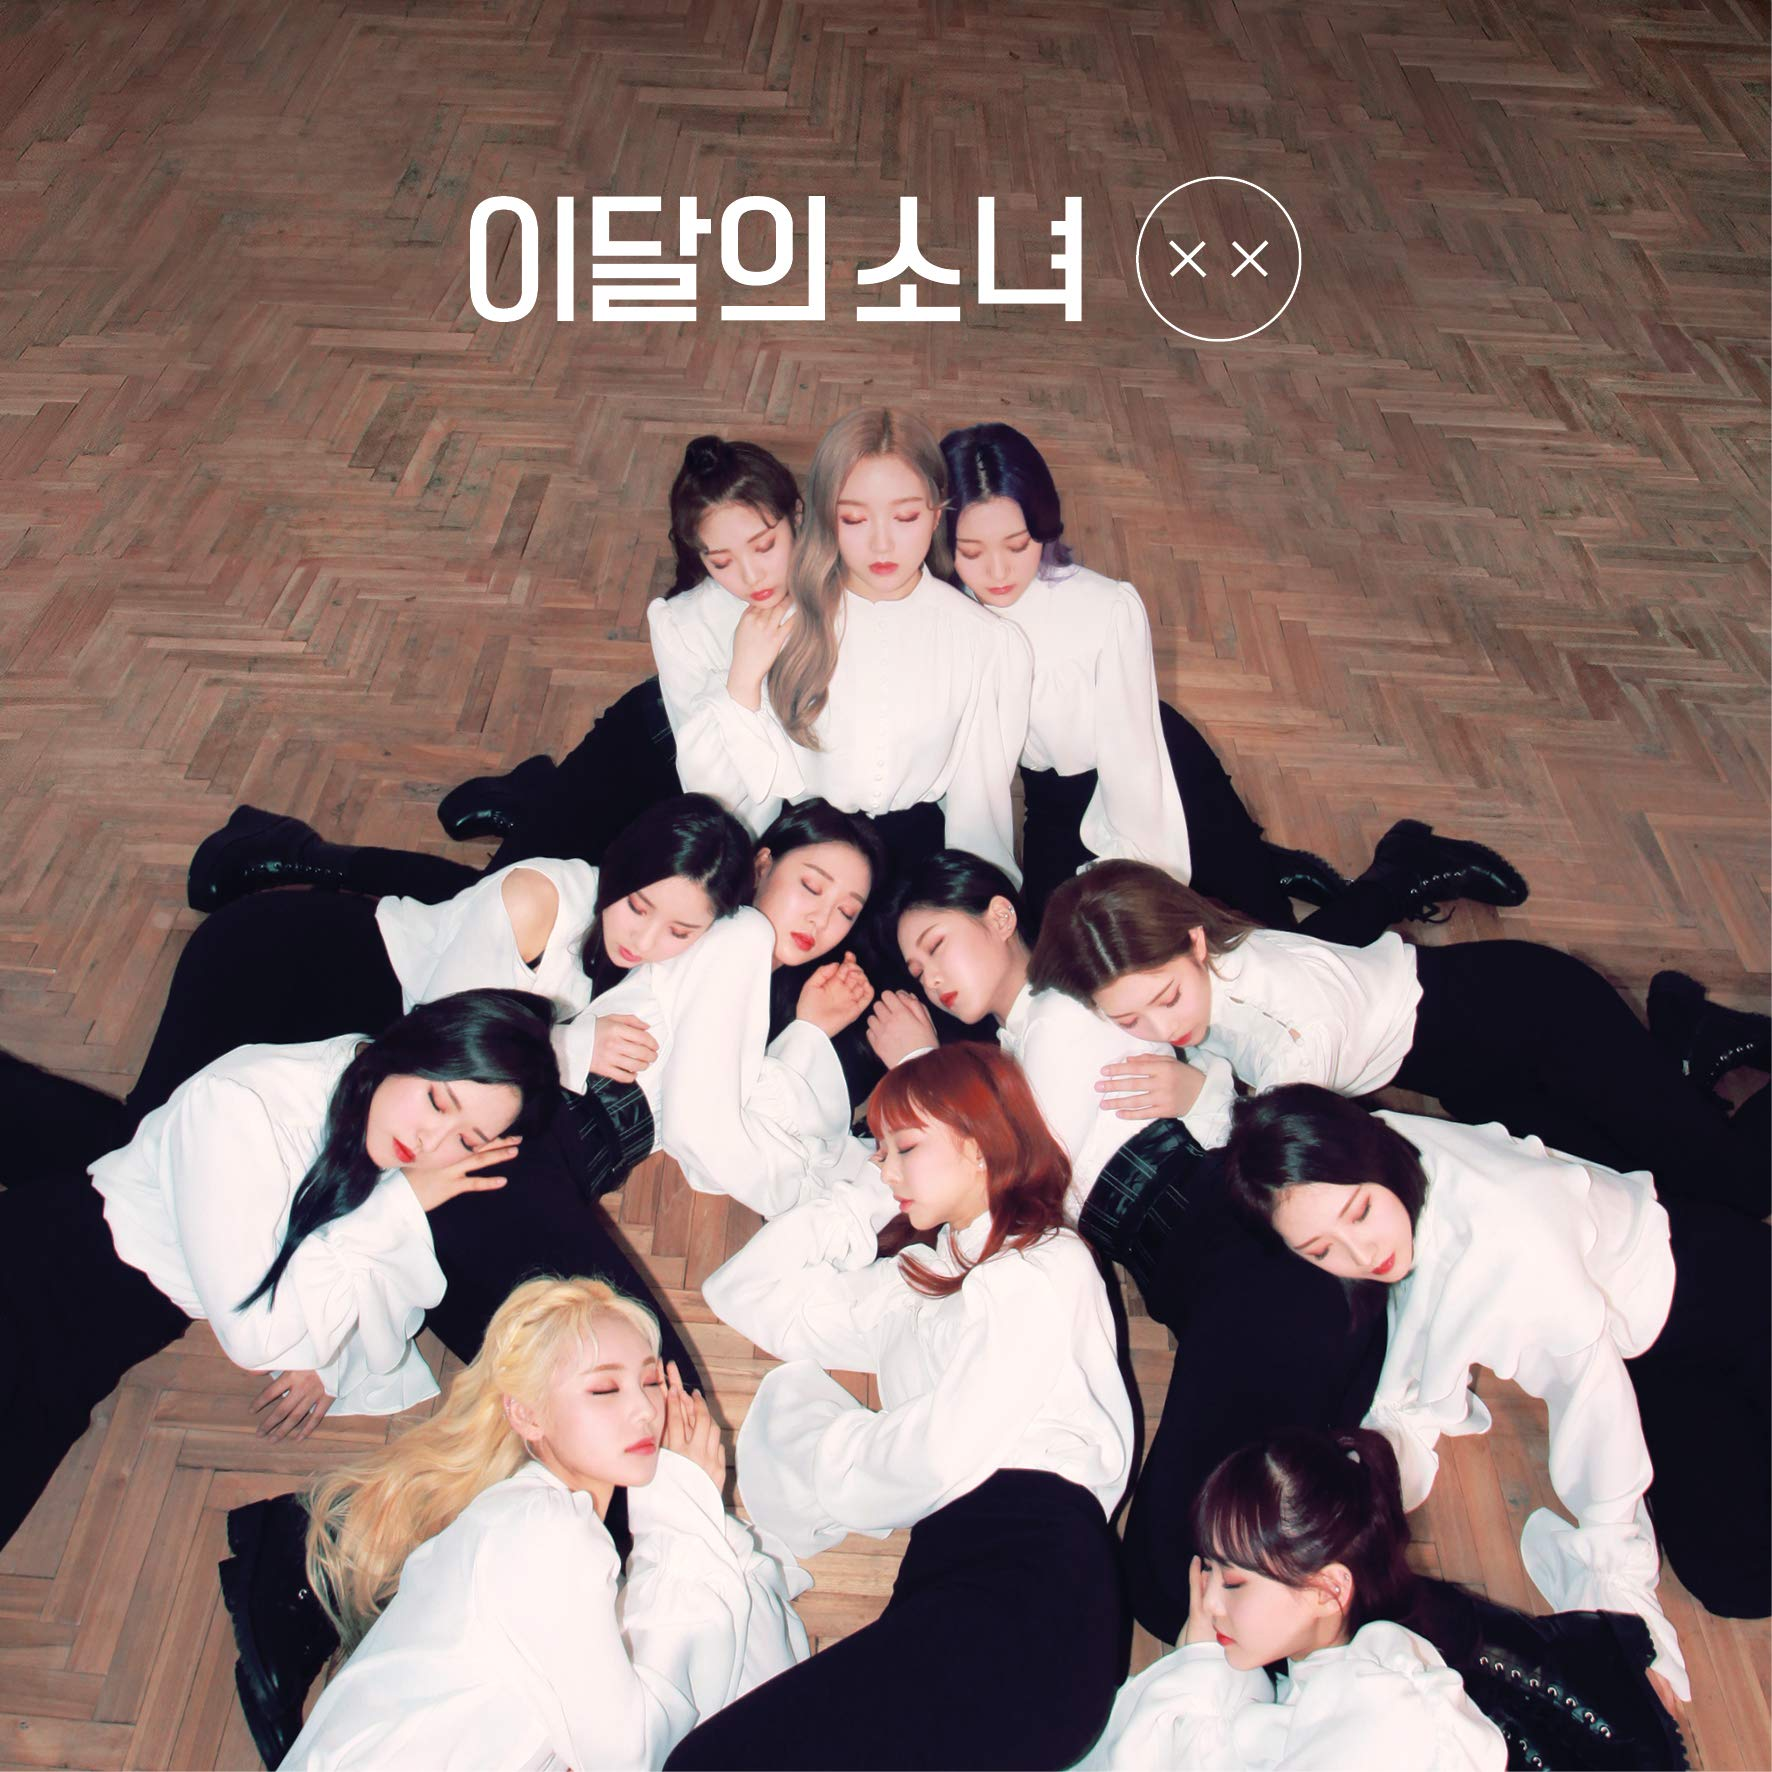 Monthly Girl LOONA - X X (Debut Mini Repackage) [Limited B ver.] CD+Booklet+1Photocard+Folded Poster+Double Side Extra Photocards Set by BlockBerryCreative